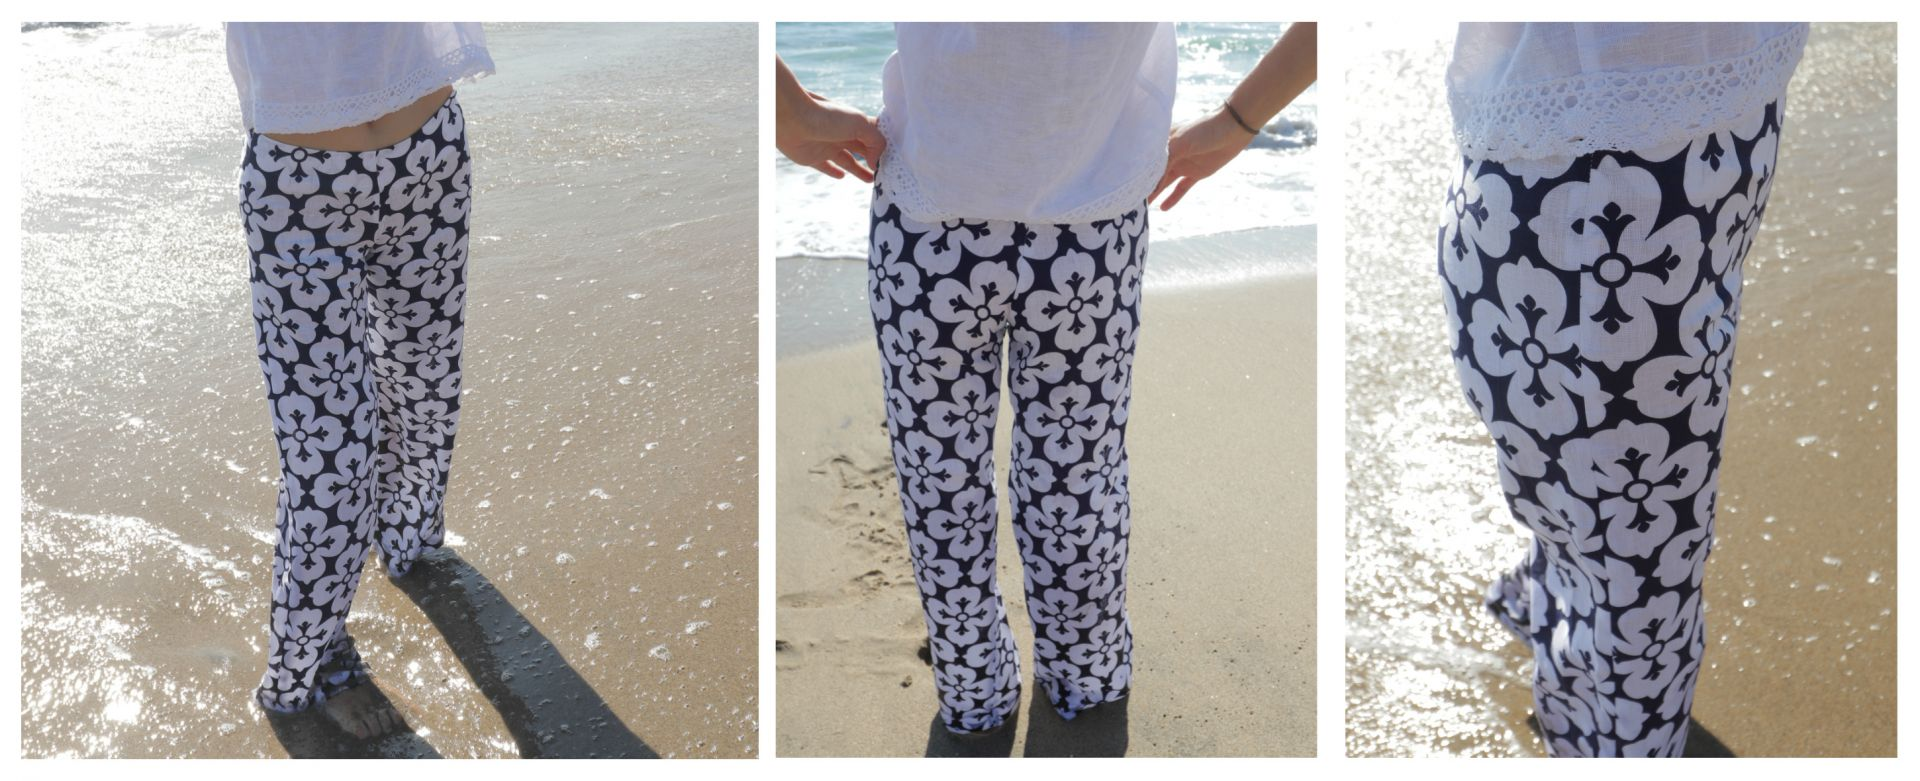 wide leg pant sewing pattern<span>hipster pants in white linen with a bold blue print, worn by the beach.</span>